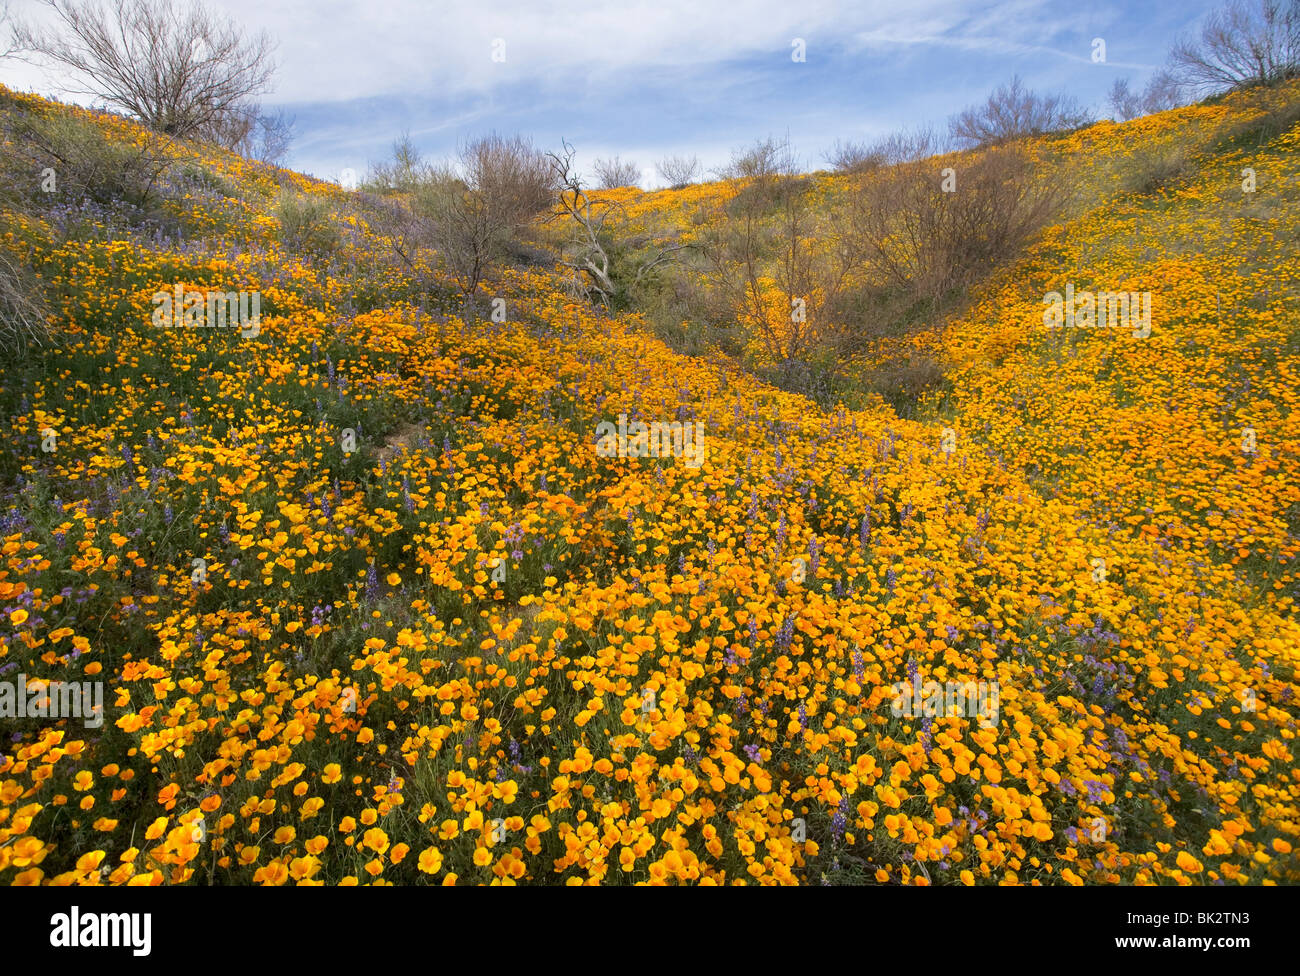 A large field of orange and yellow poppies and wildflowers that goes on forever in Catalina State Park near Tucson. - Stock Image